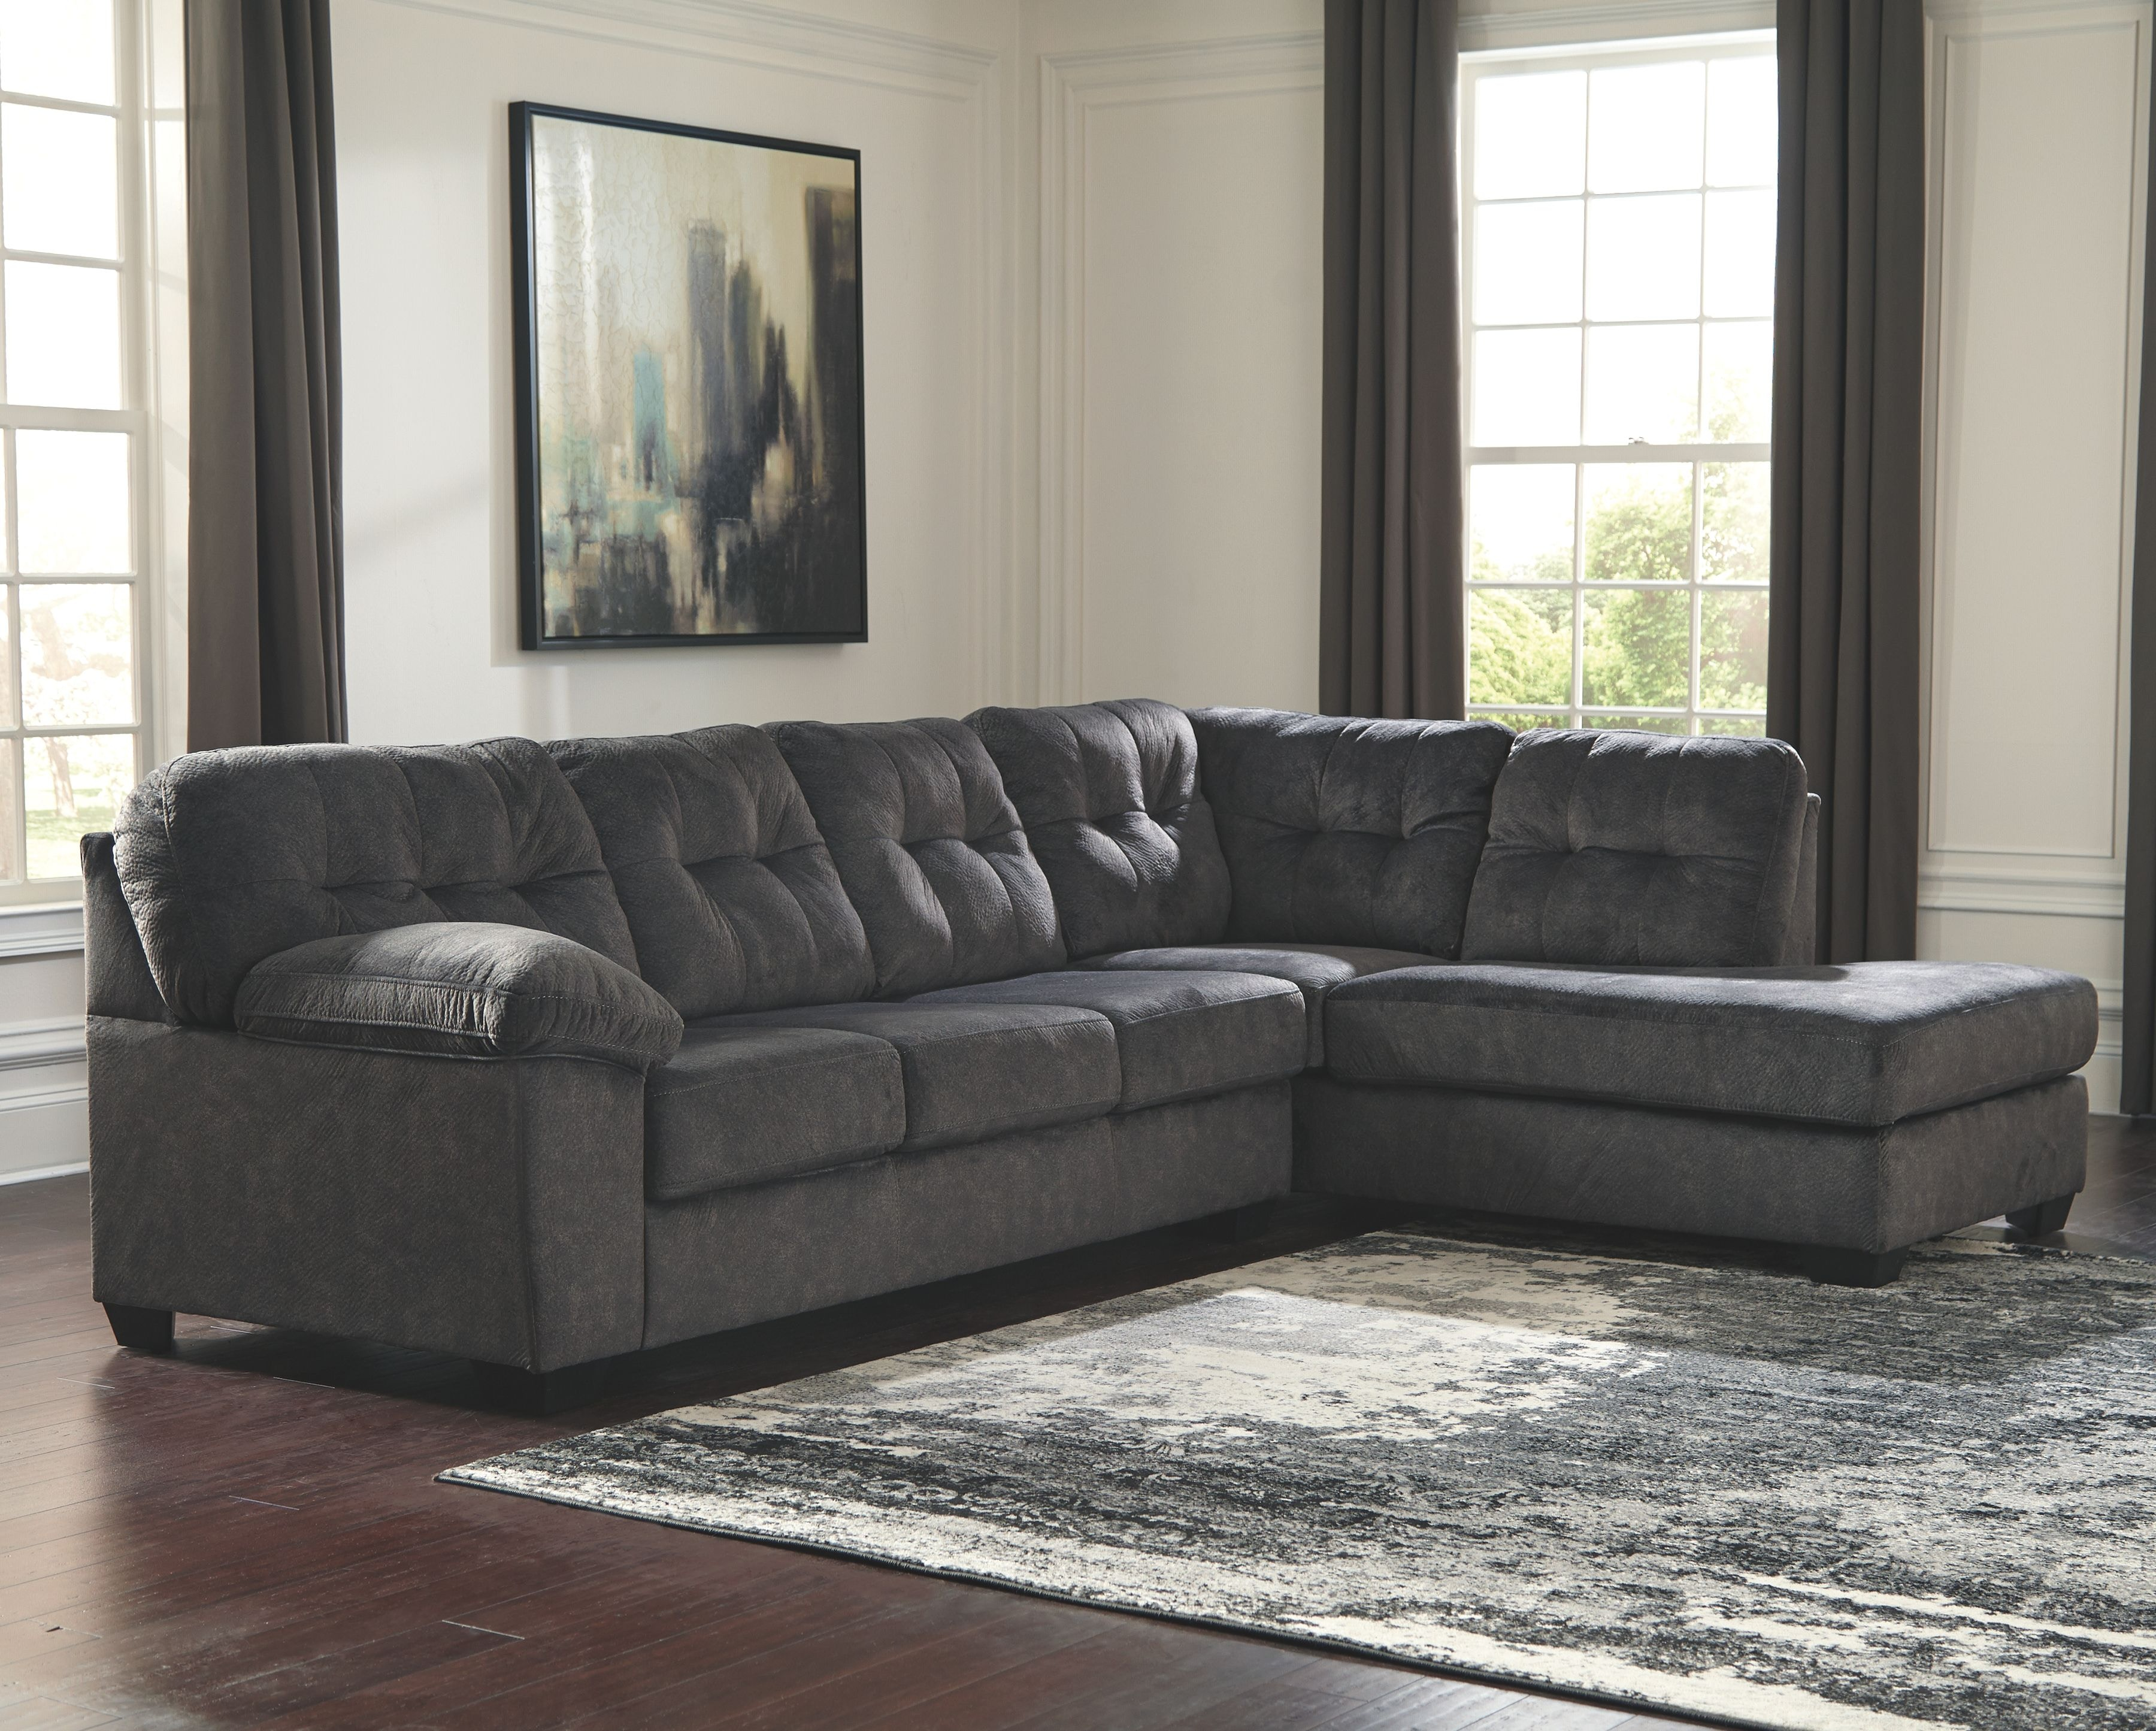 Perfect Signature Design By Ashley Living Room RAF Corner Chaise